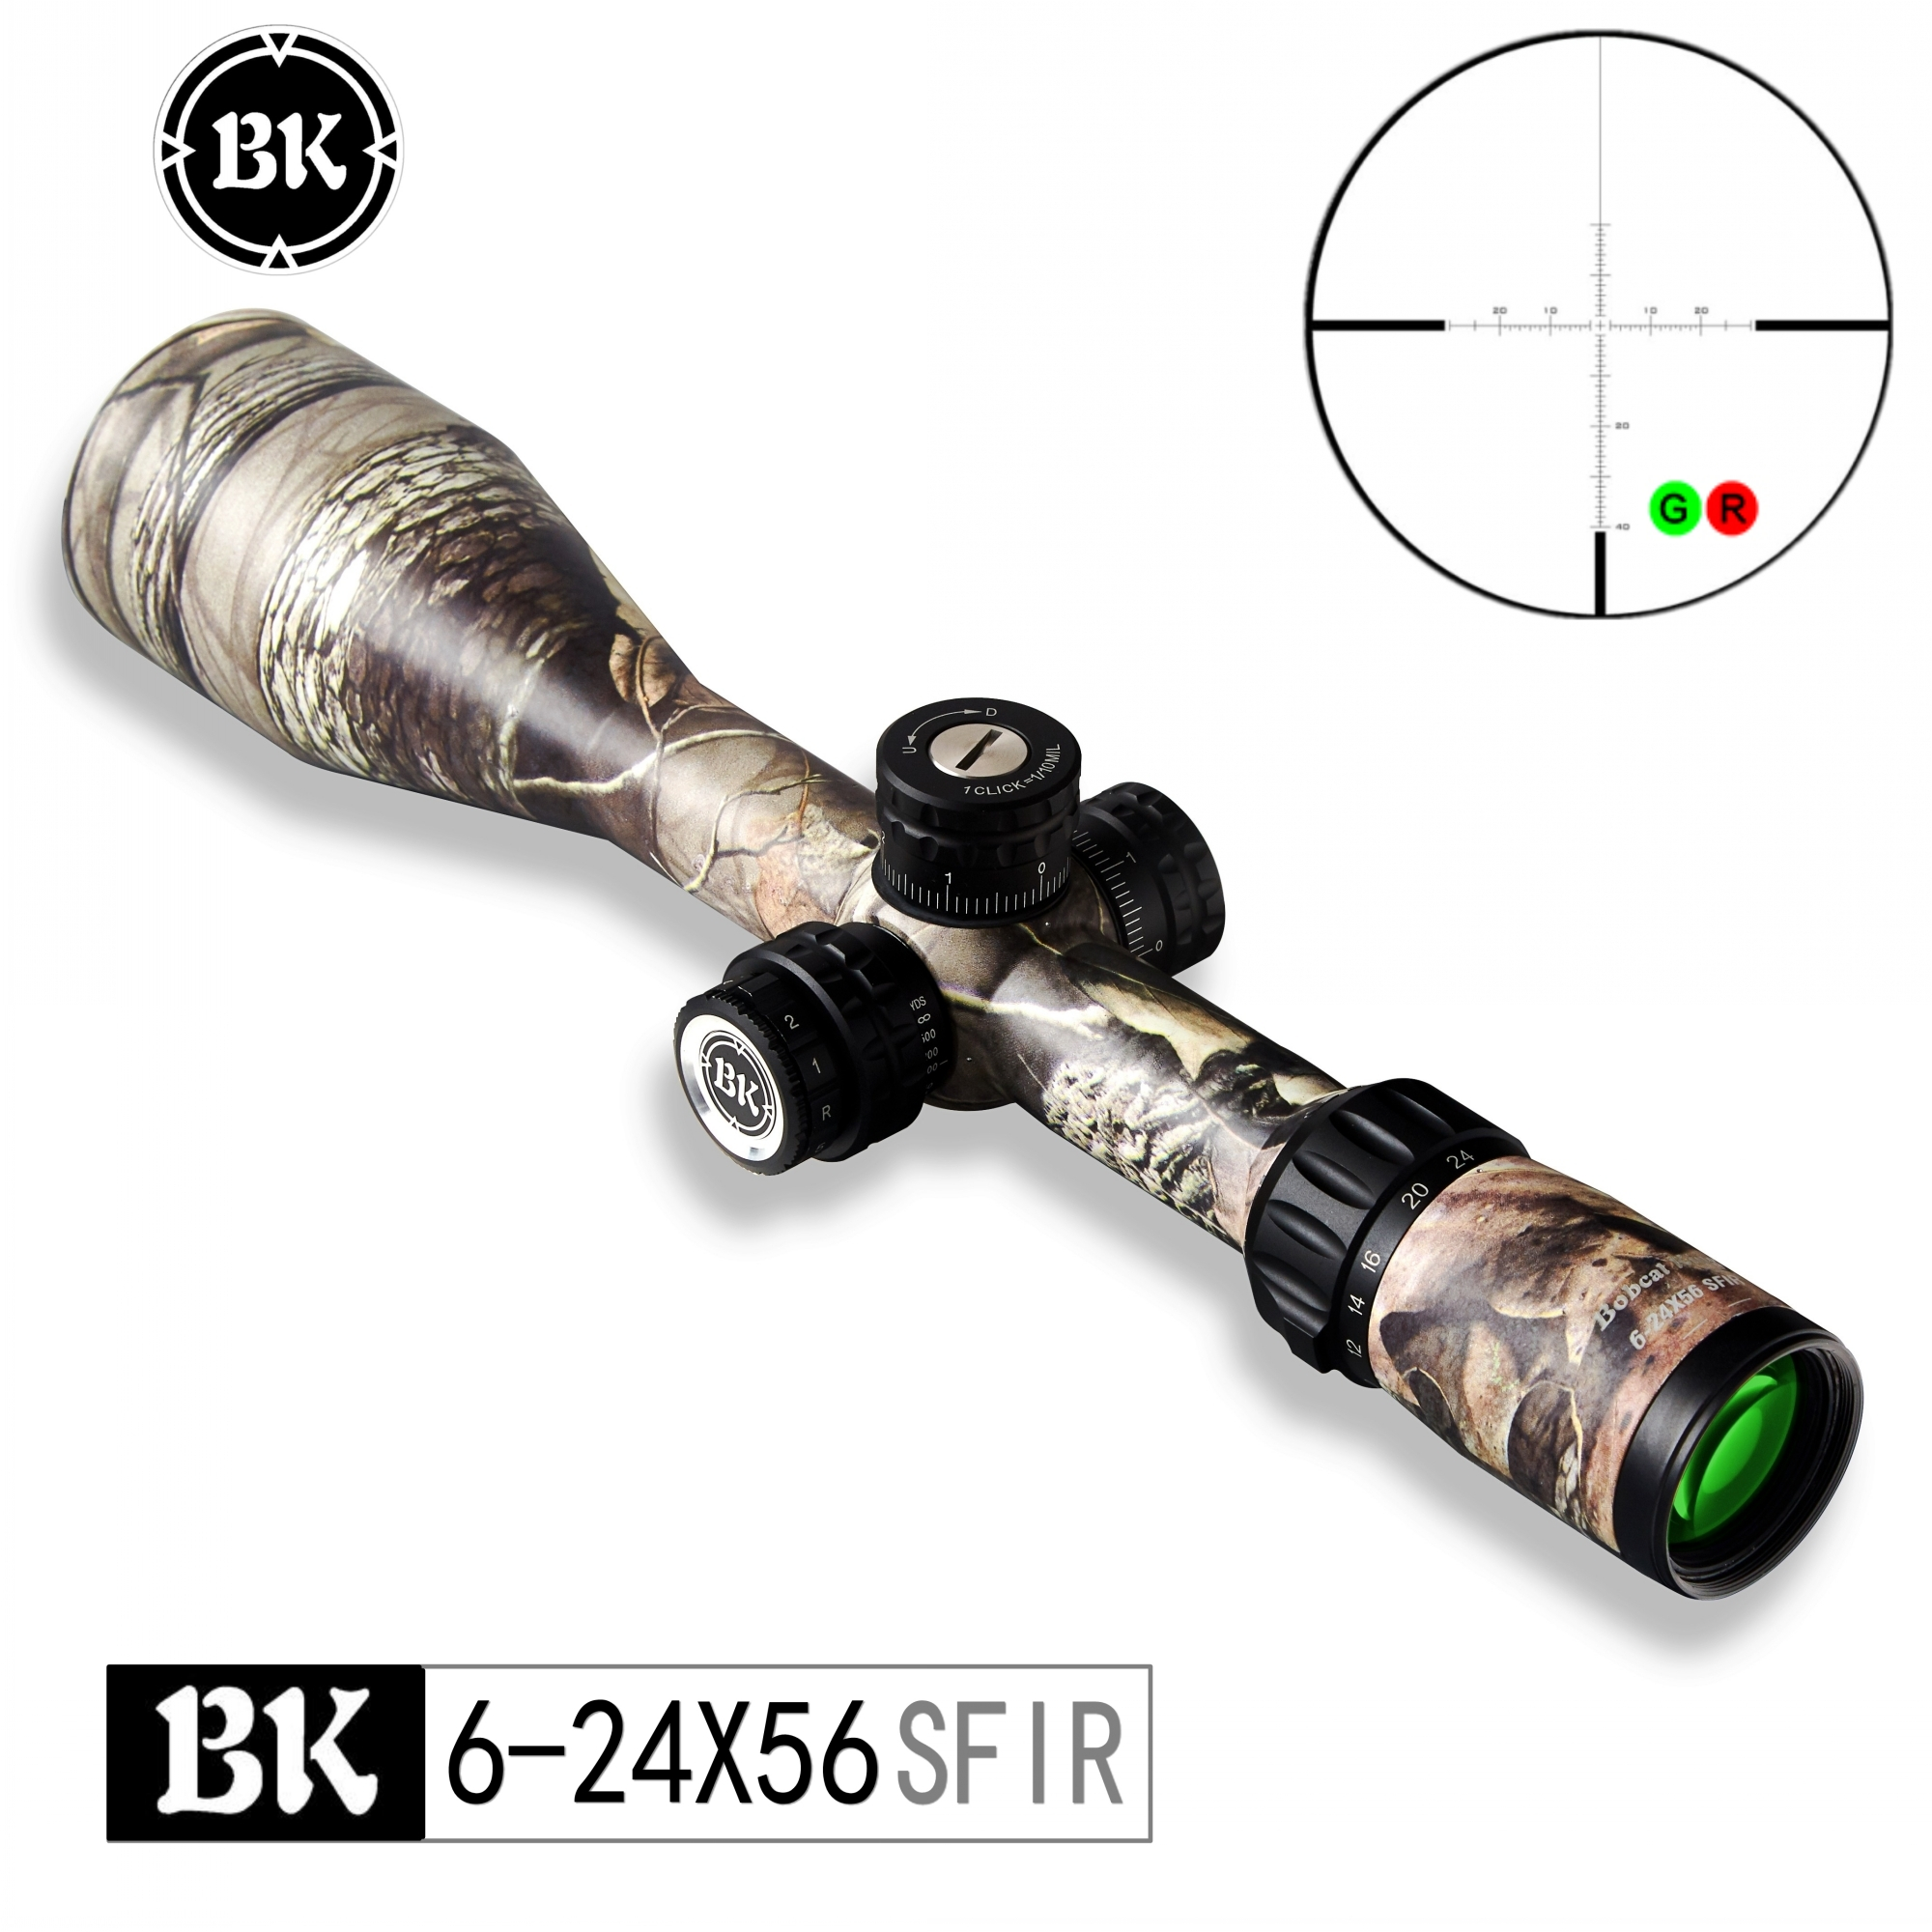 Bobcat King Optics BK 6-24X56 SFIR Camouflage Appearance Tactical Optical Sight Sniper Hunting Rifle  Reflex Holographic Aiming